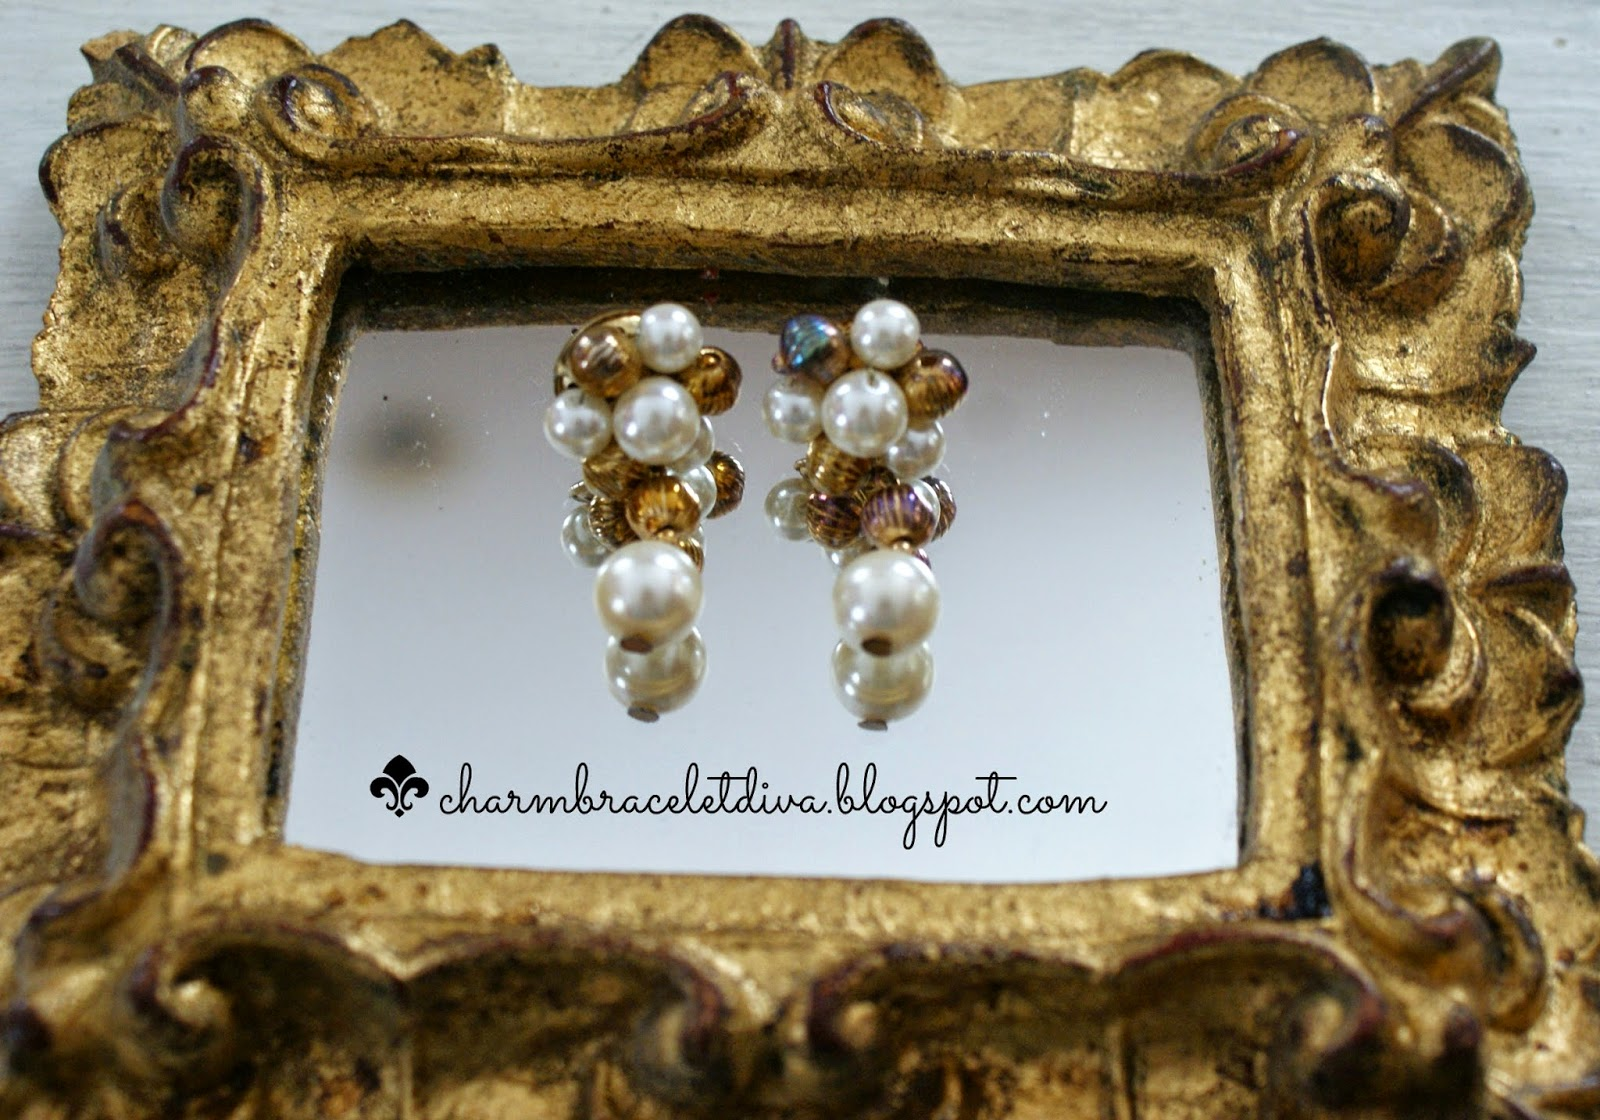 Vintage pearl and bead cluster drop earrings on mirror